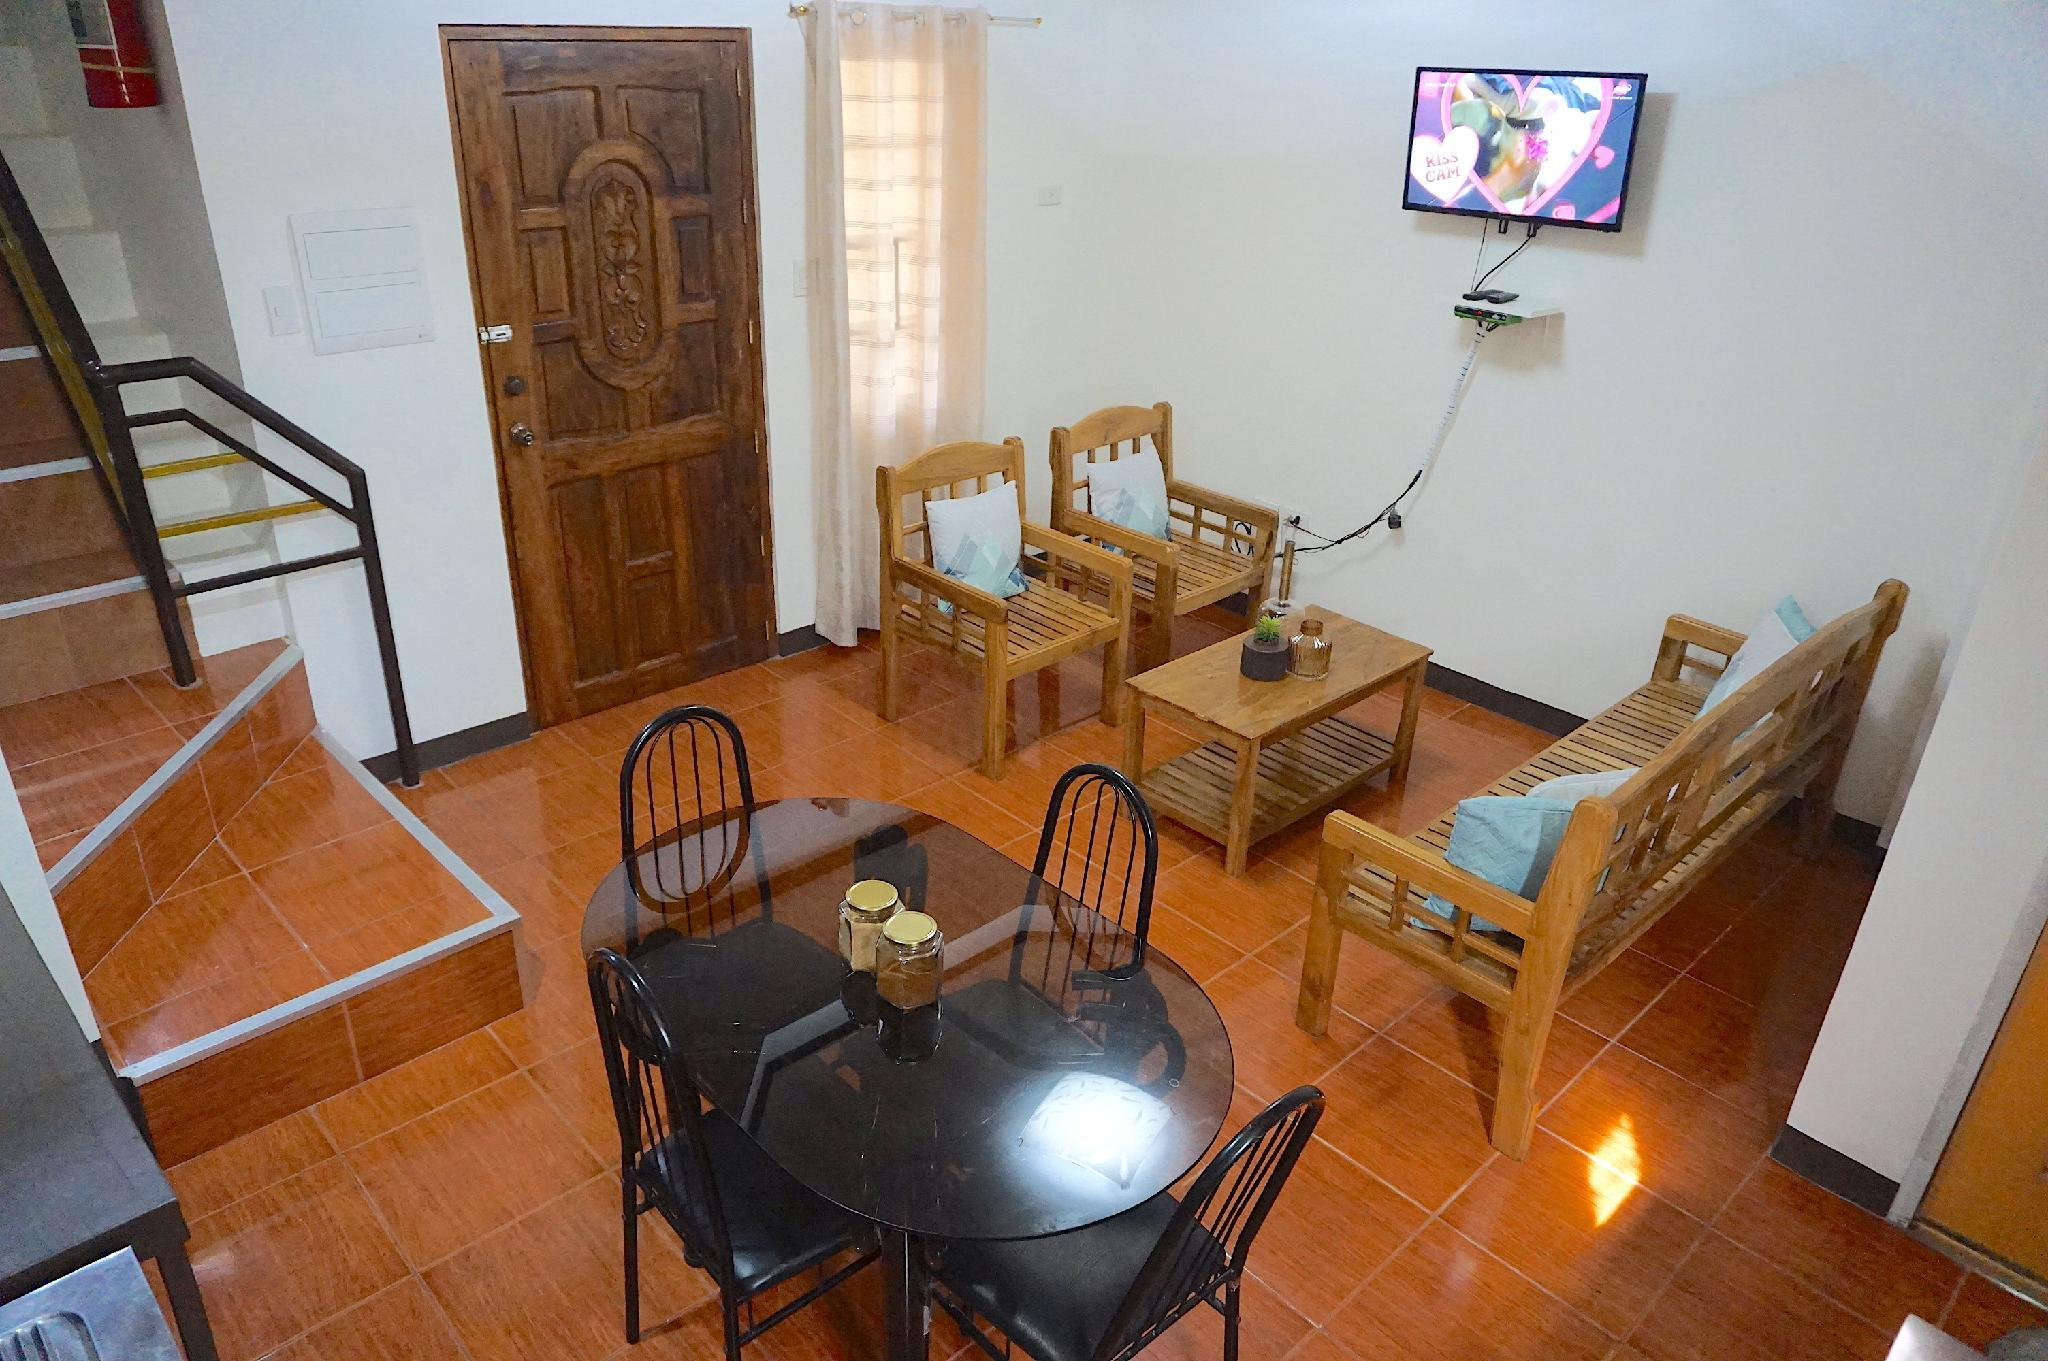 3 Bedroom Home In The City   Cozy And Quiet  01